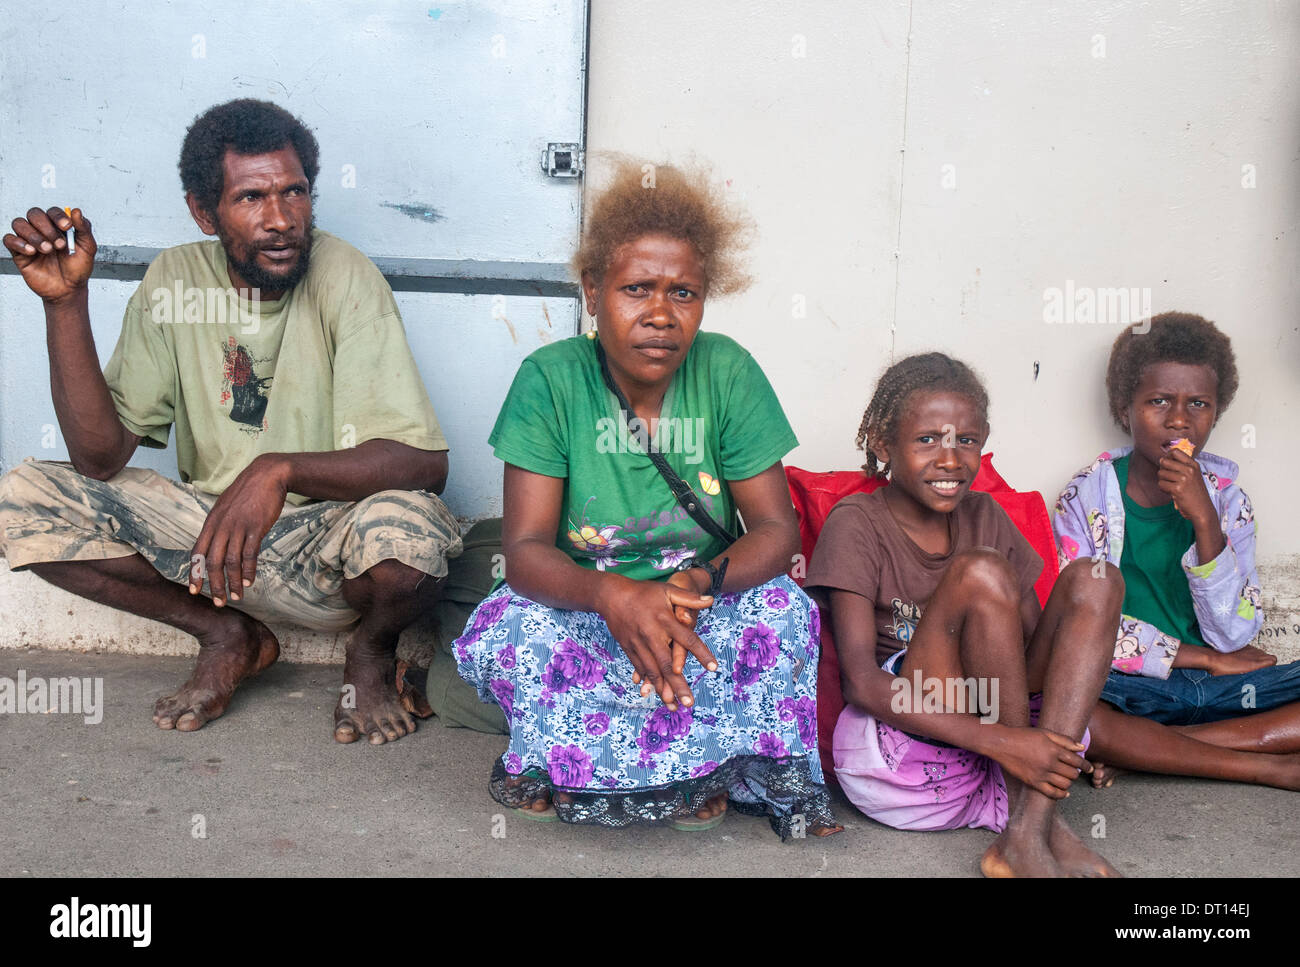 Solomon Islander family waiting for transport home from the Central Market in Honiara - Stock Image